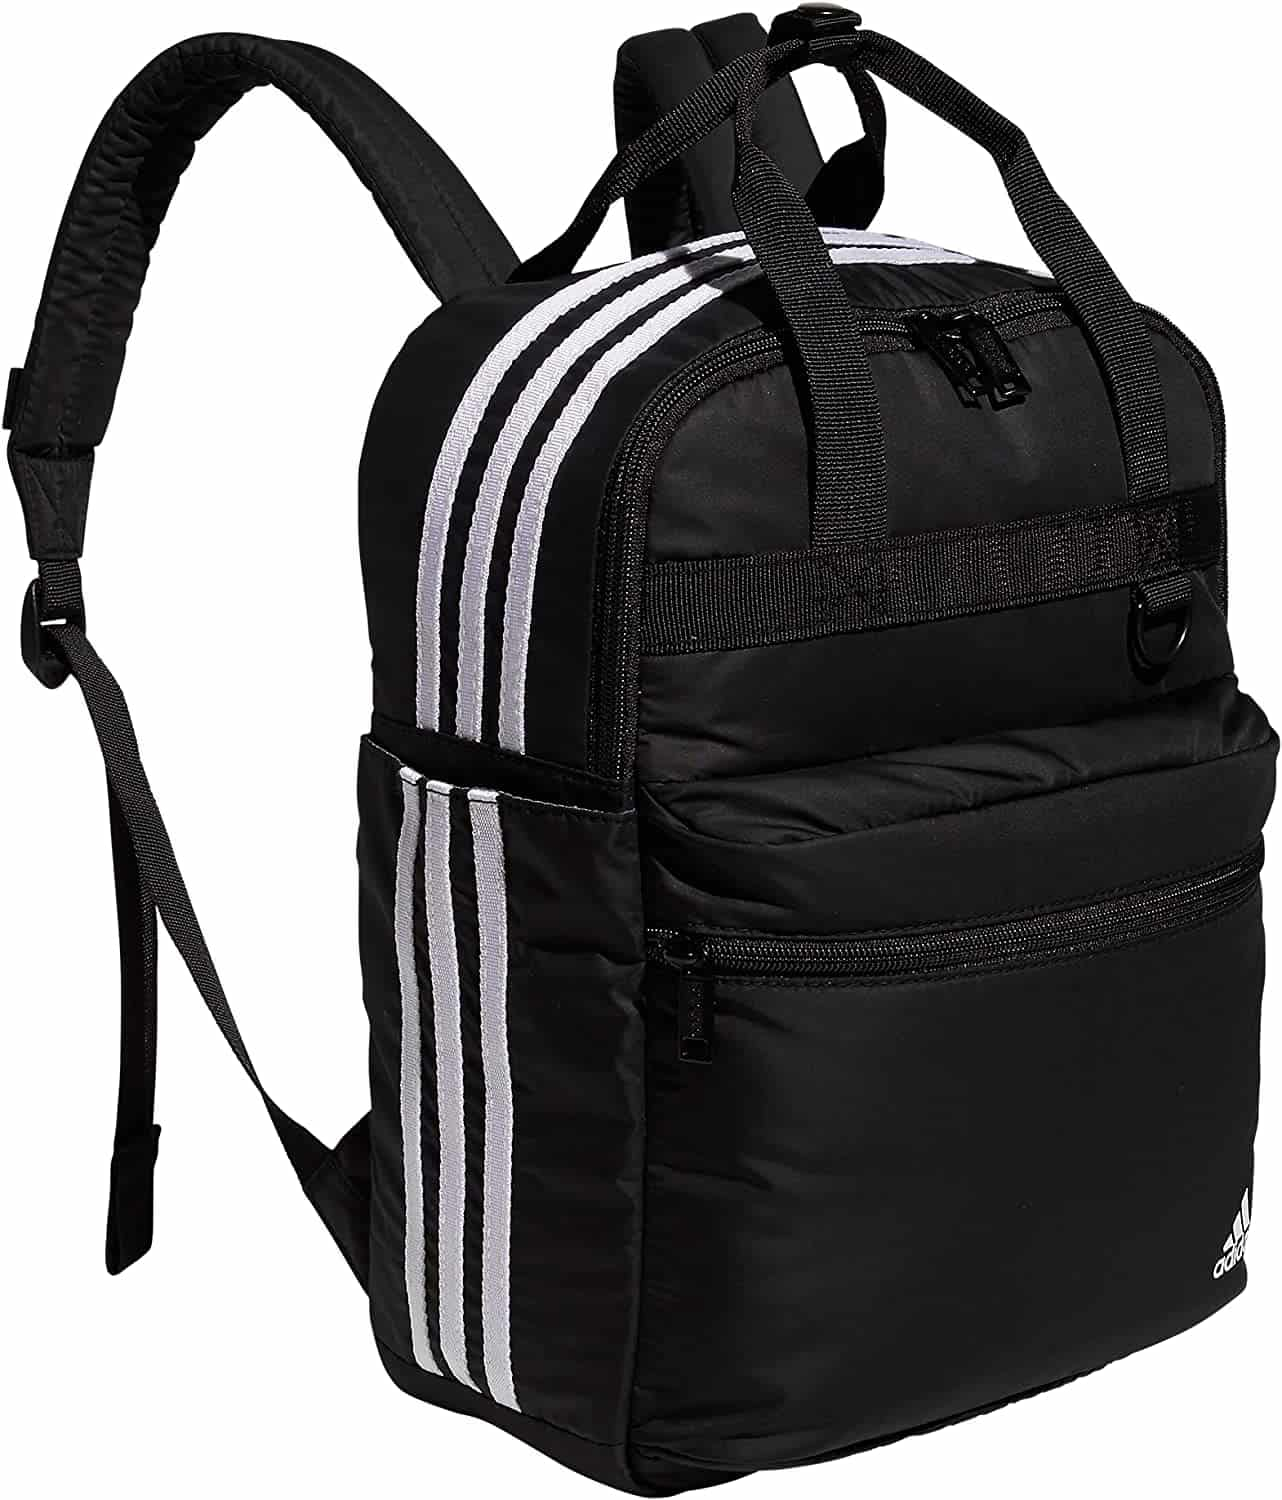 adidas Essentials 2 Backpack, Black/White, One Size